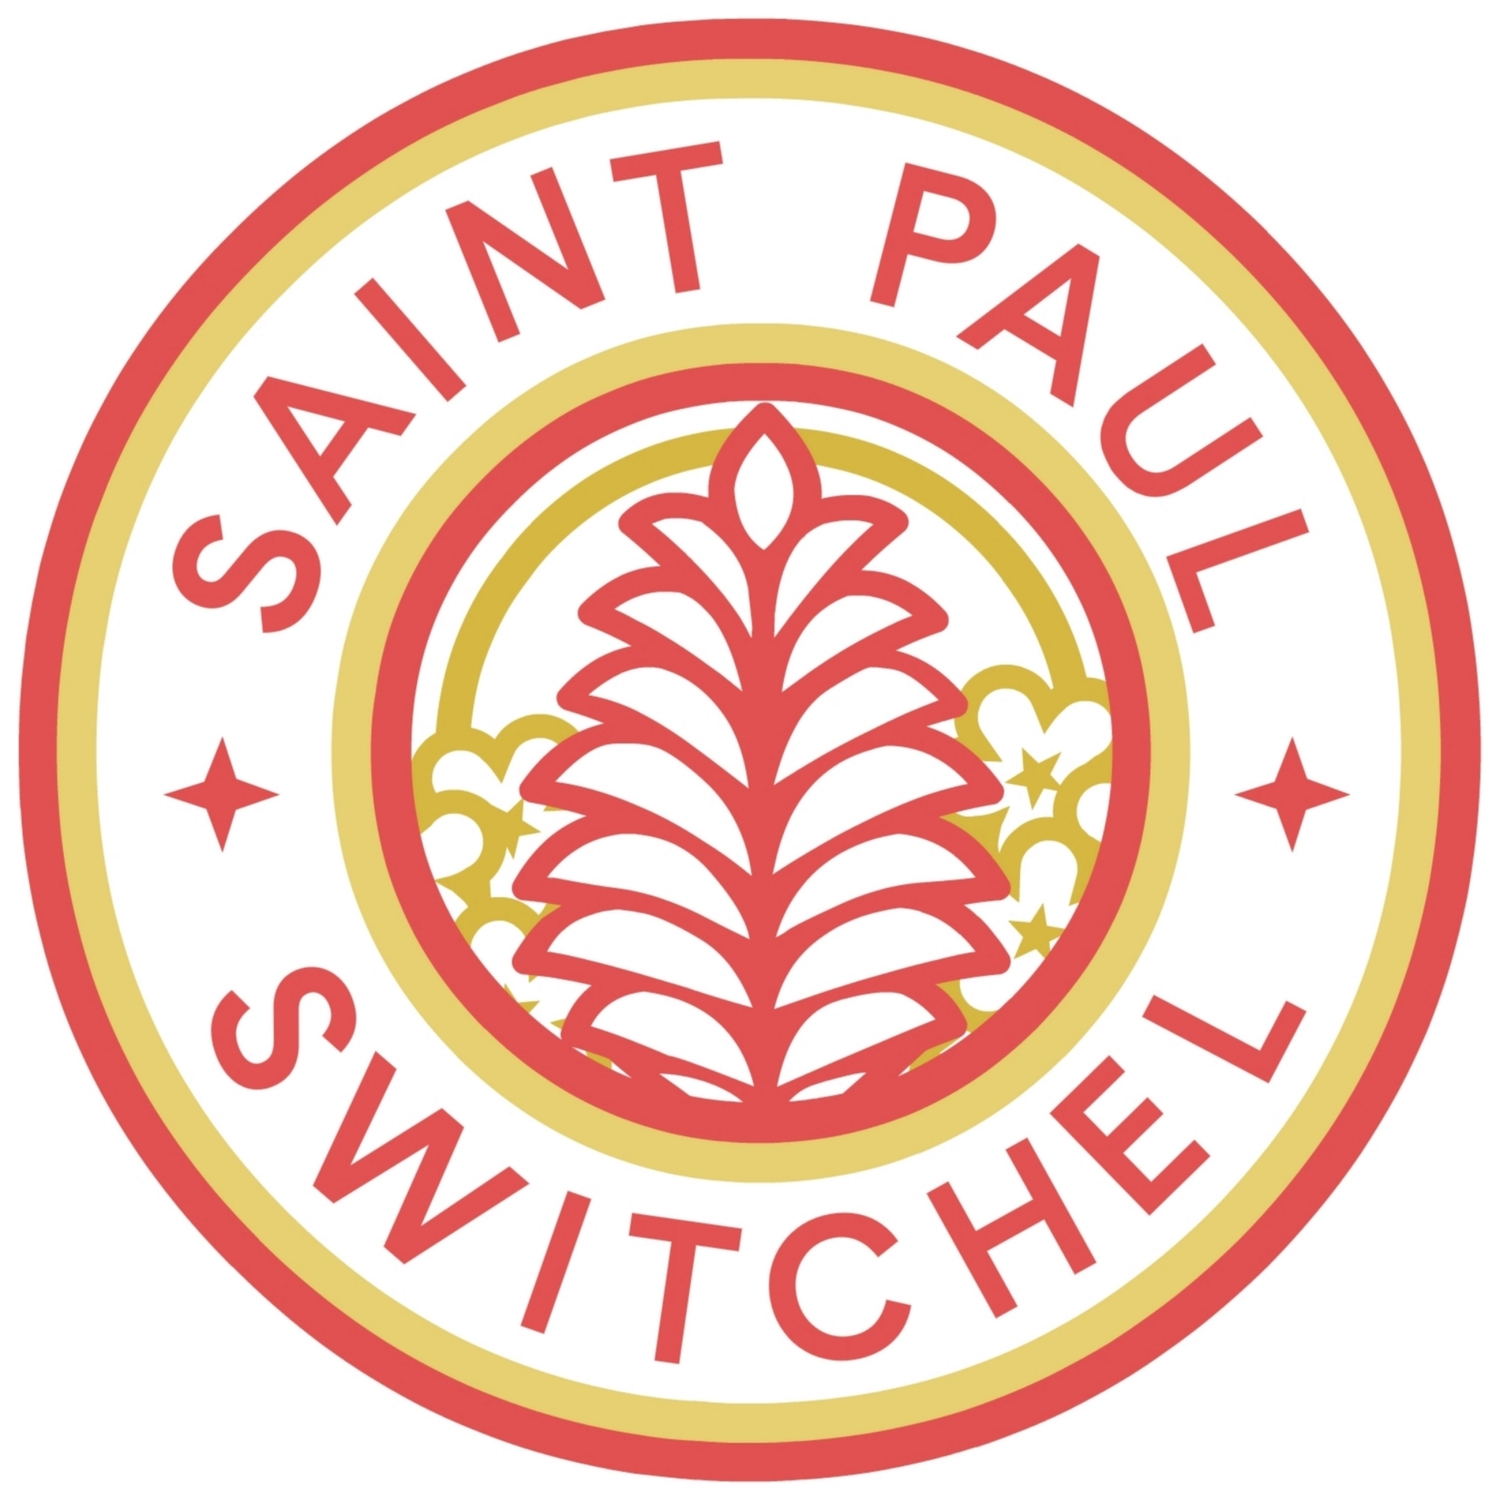 Saint Paul Switchel